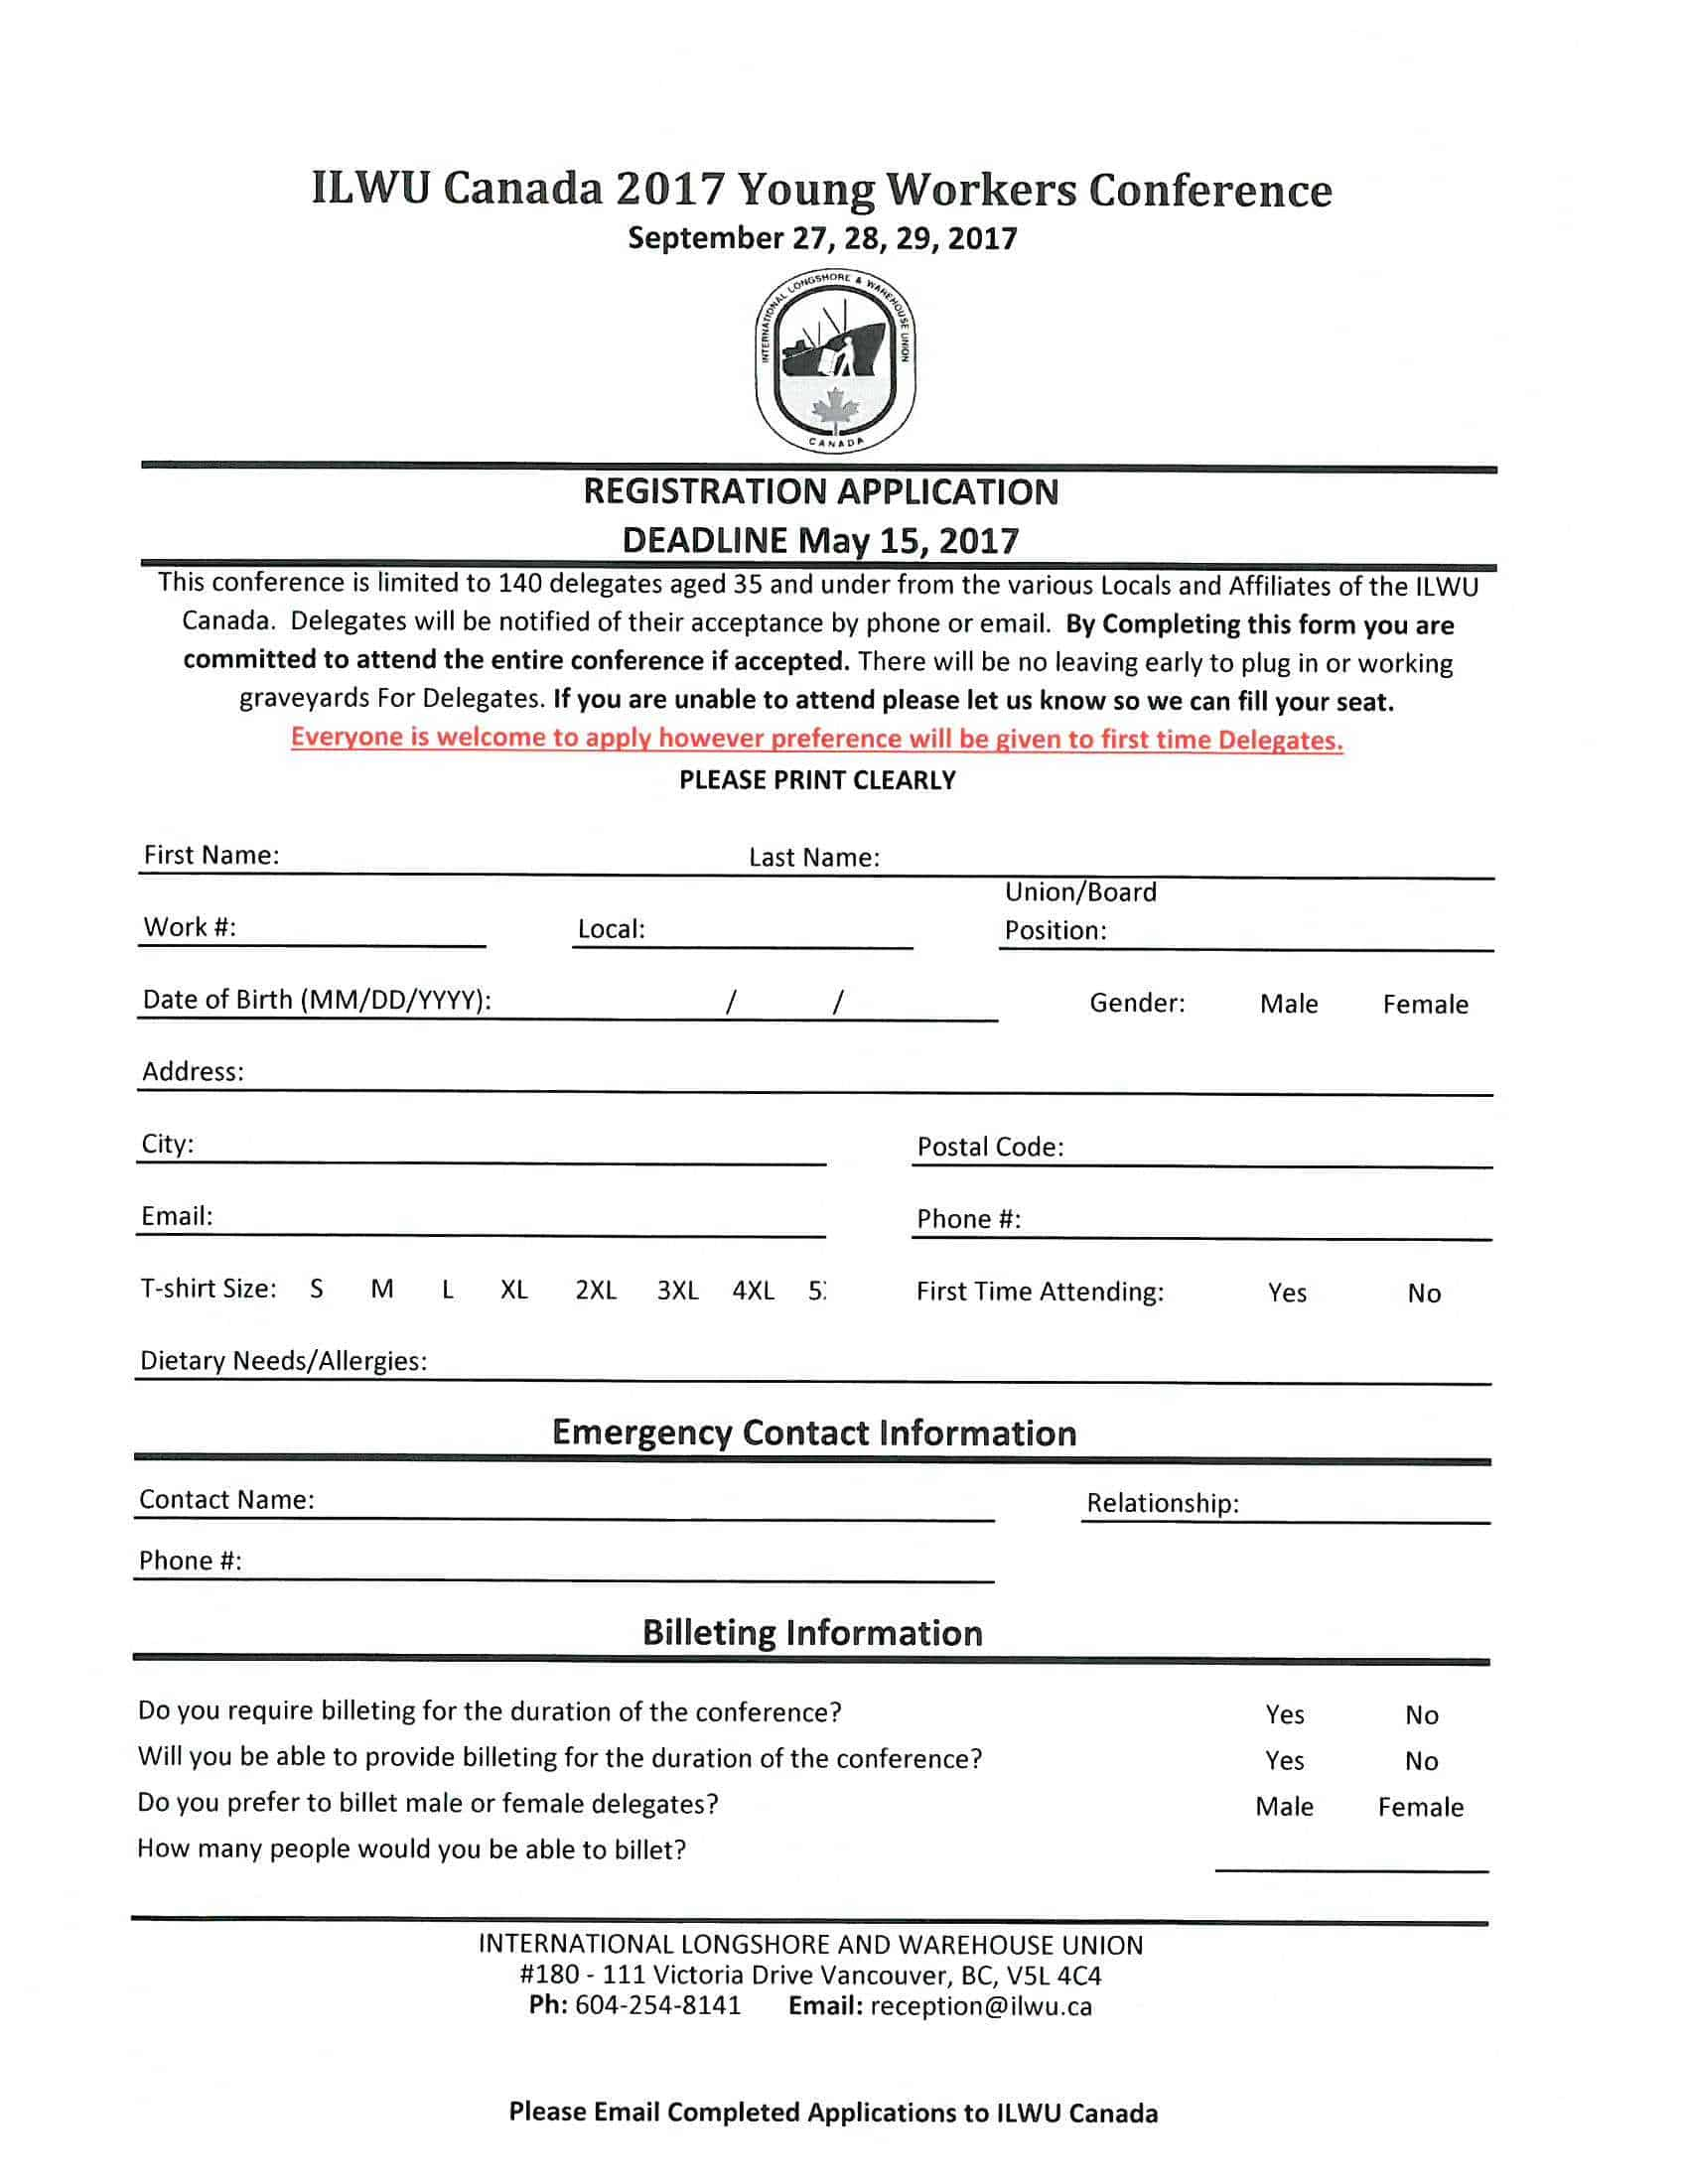 2017 Application Form